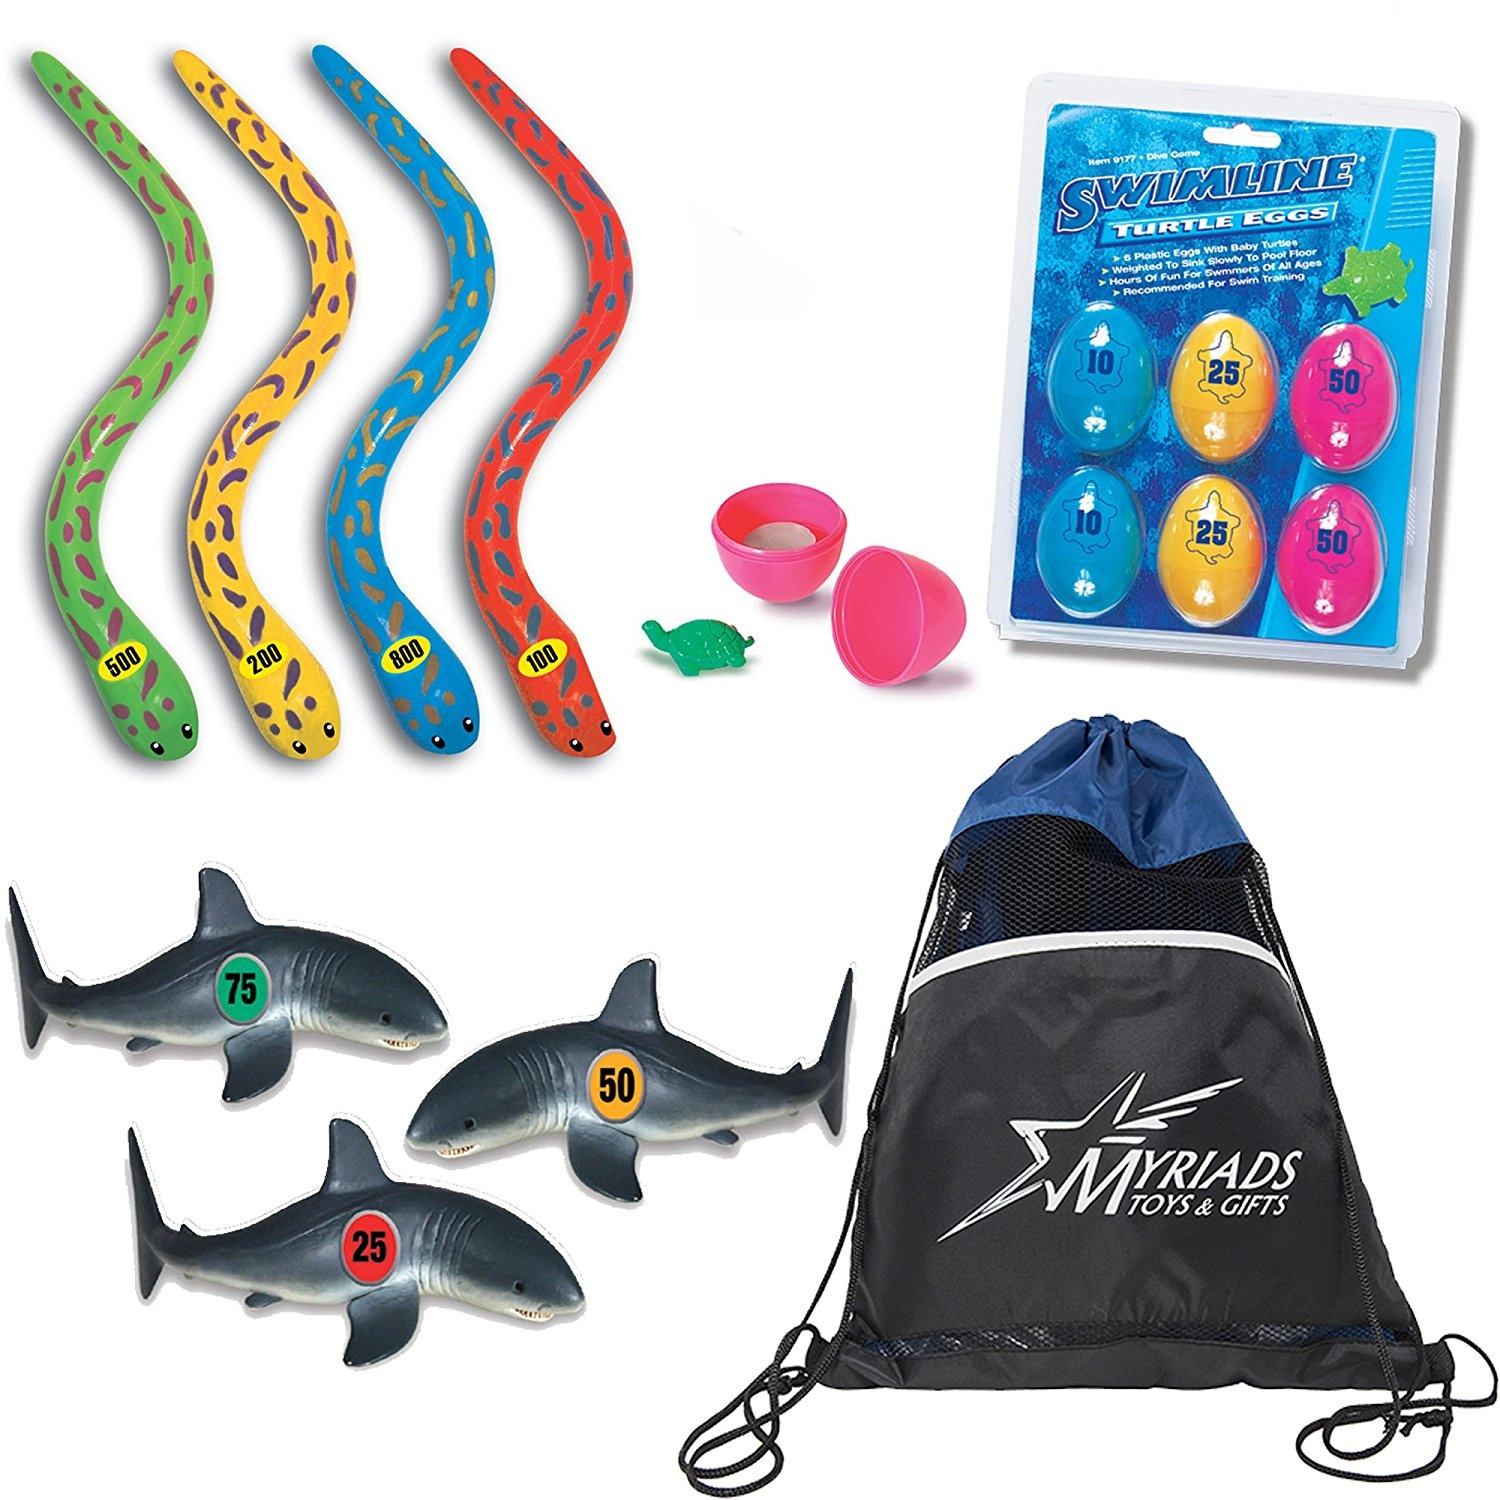 Swimline Underwater Swimming Diving Pool Toys Set Of 3 Turtle Eggs Drawstring Bag Shark Dive Game Eel Sticks Frenzy With A By